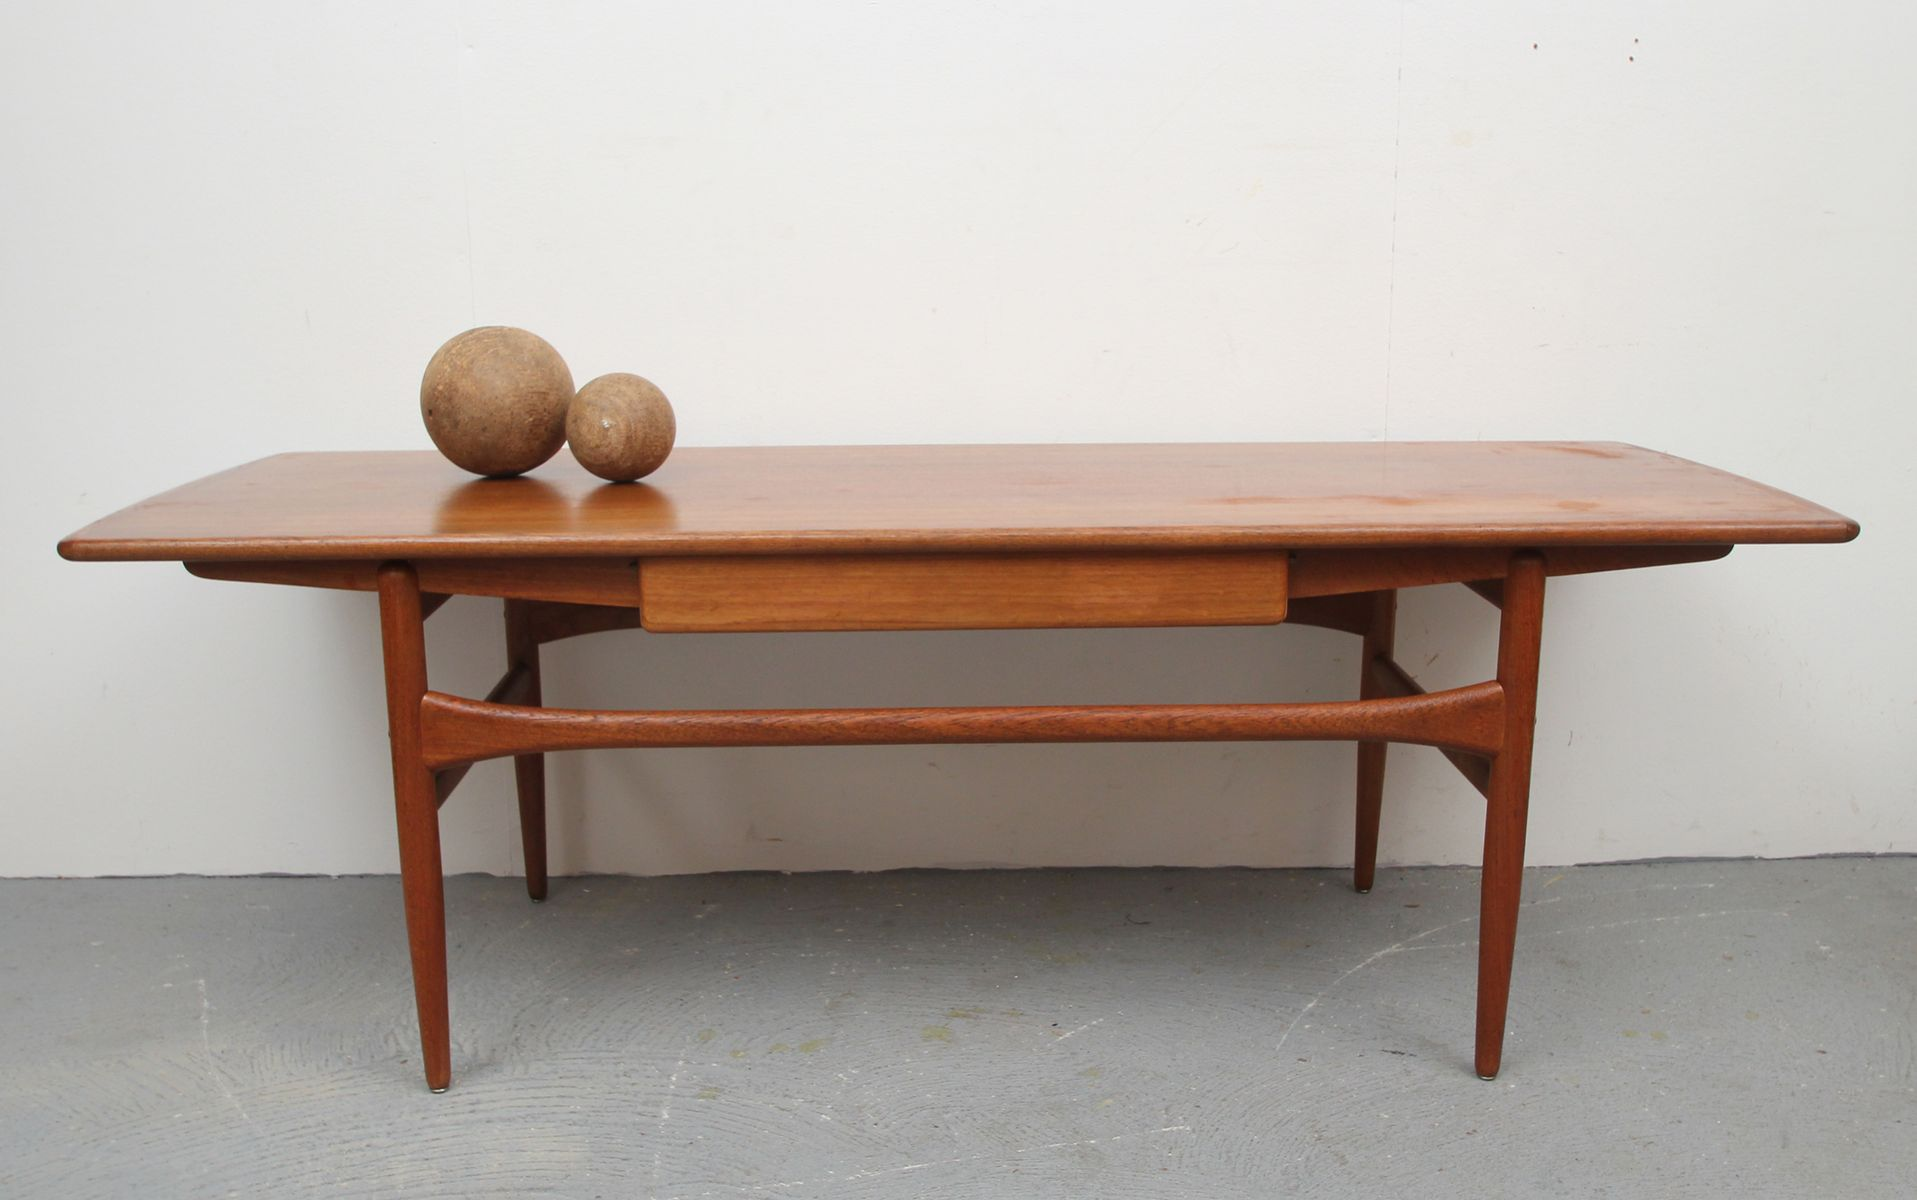 Danish Teak Coffee Table with Drawer 1960s for sale at Pamono